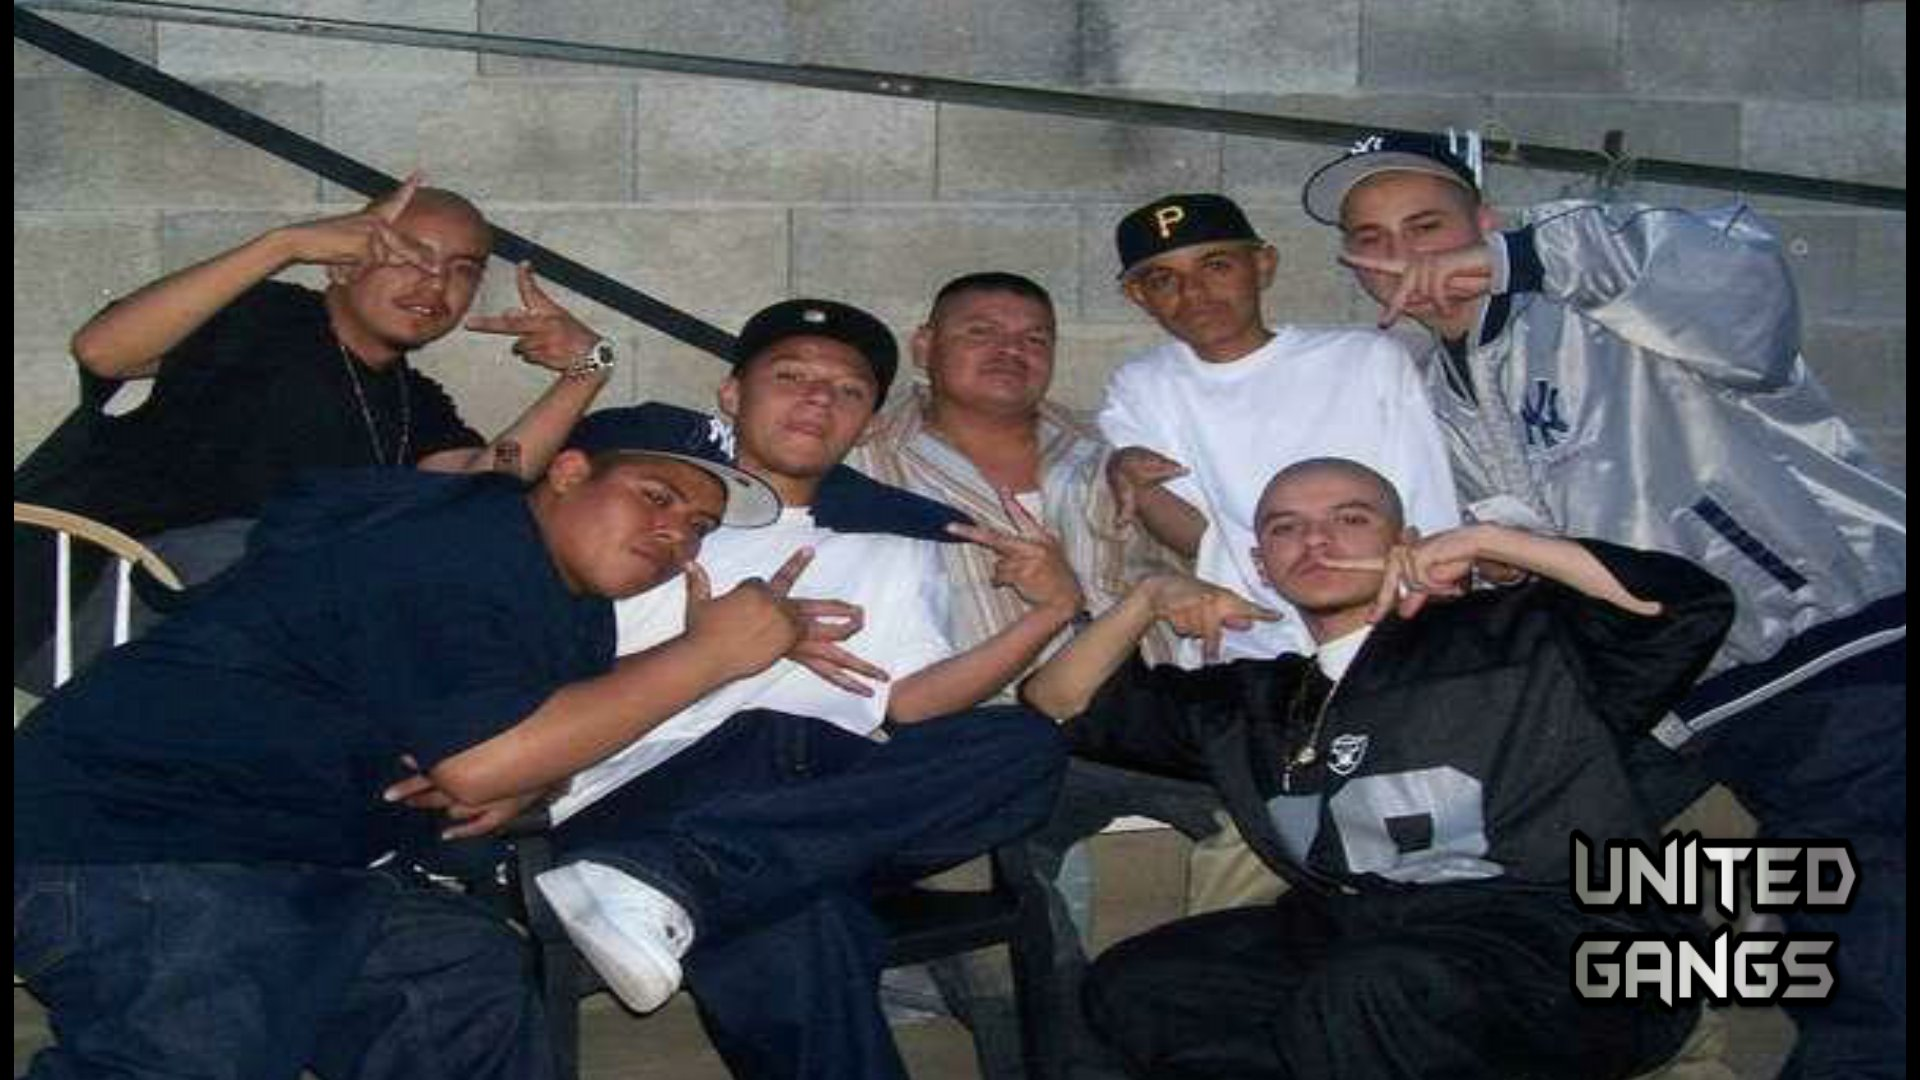 Asian gang los angeles remarkable, rather